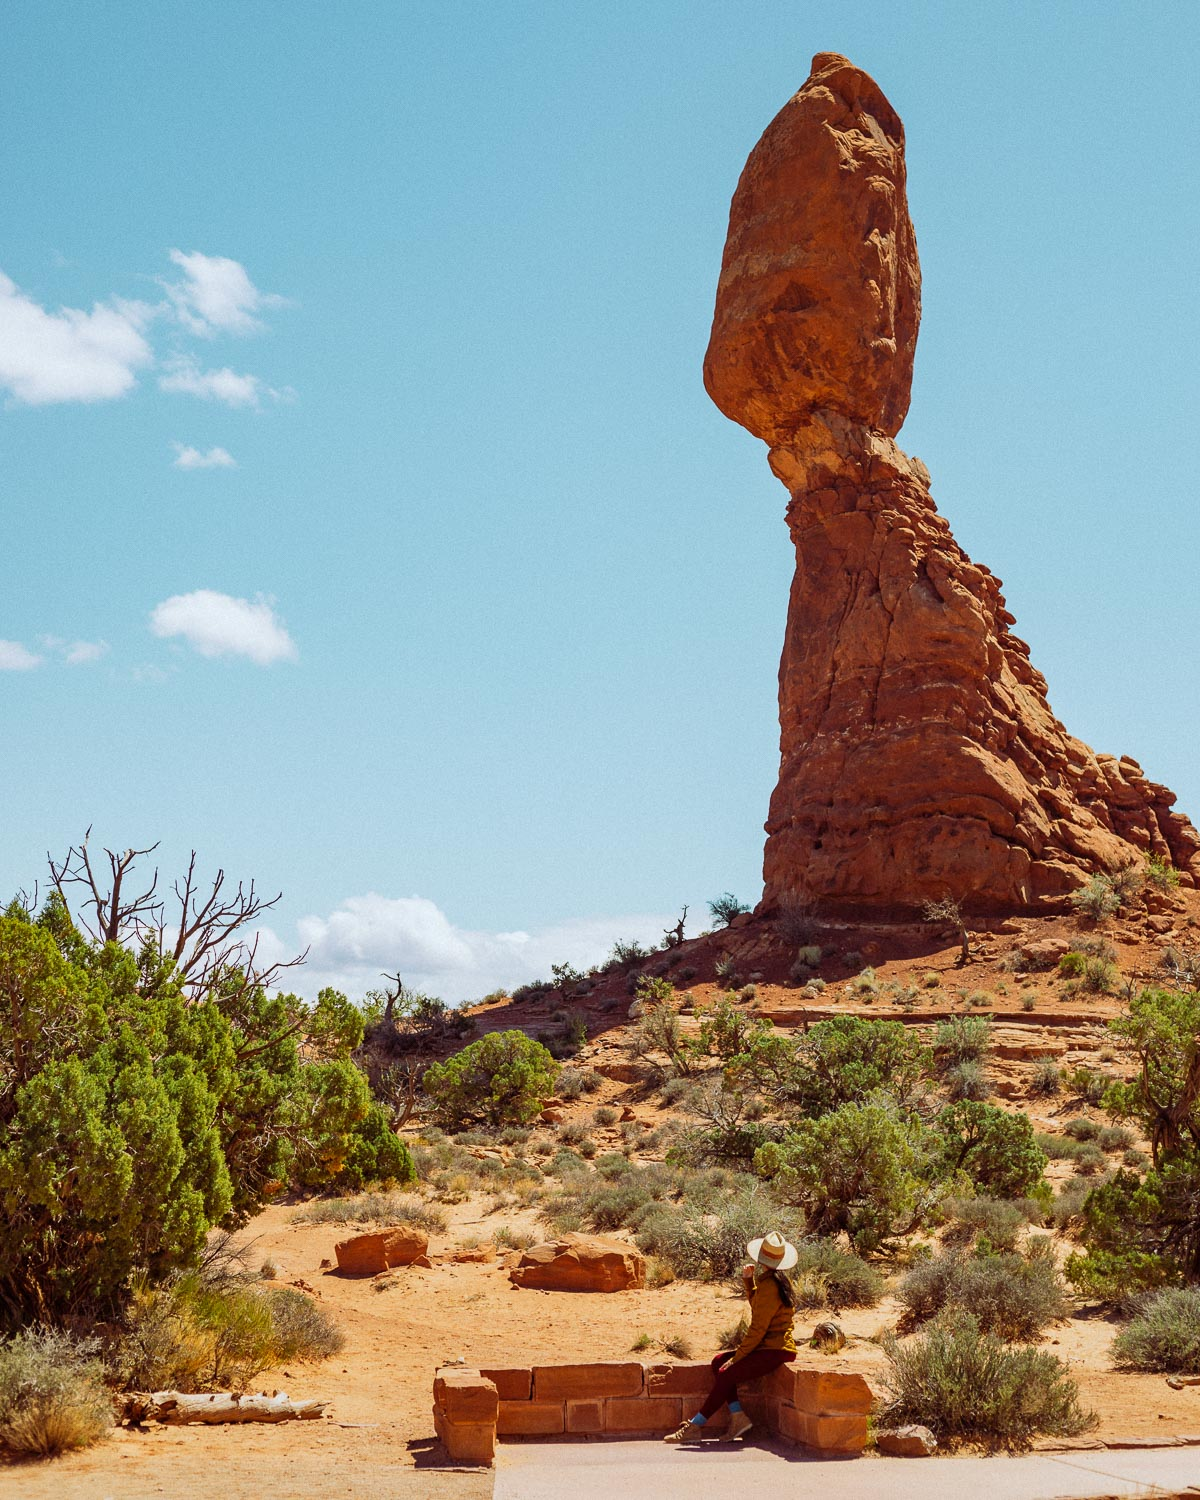 Rachel Off Duty: A Woman Looks Up at Balanced Rock in Arches National Park